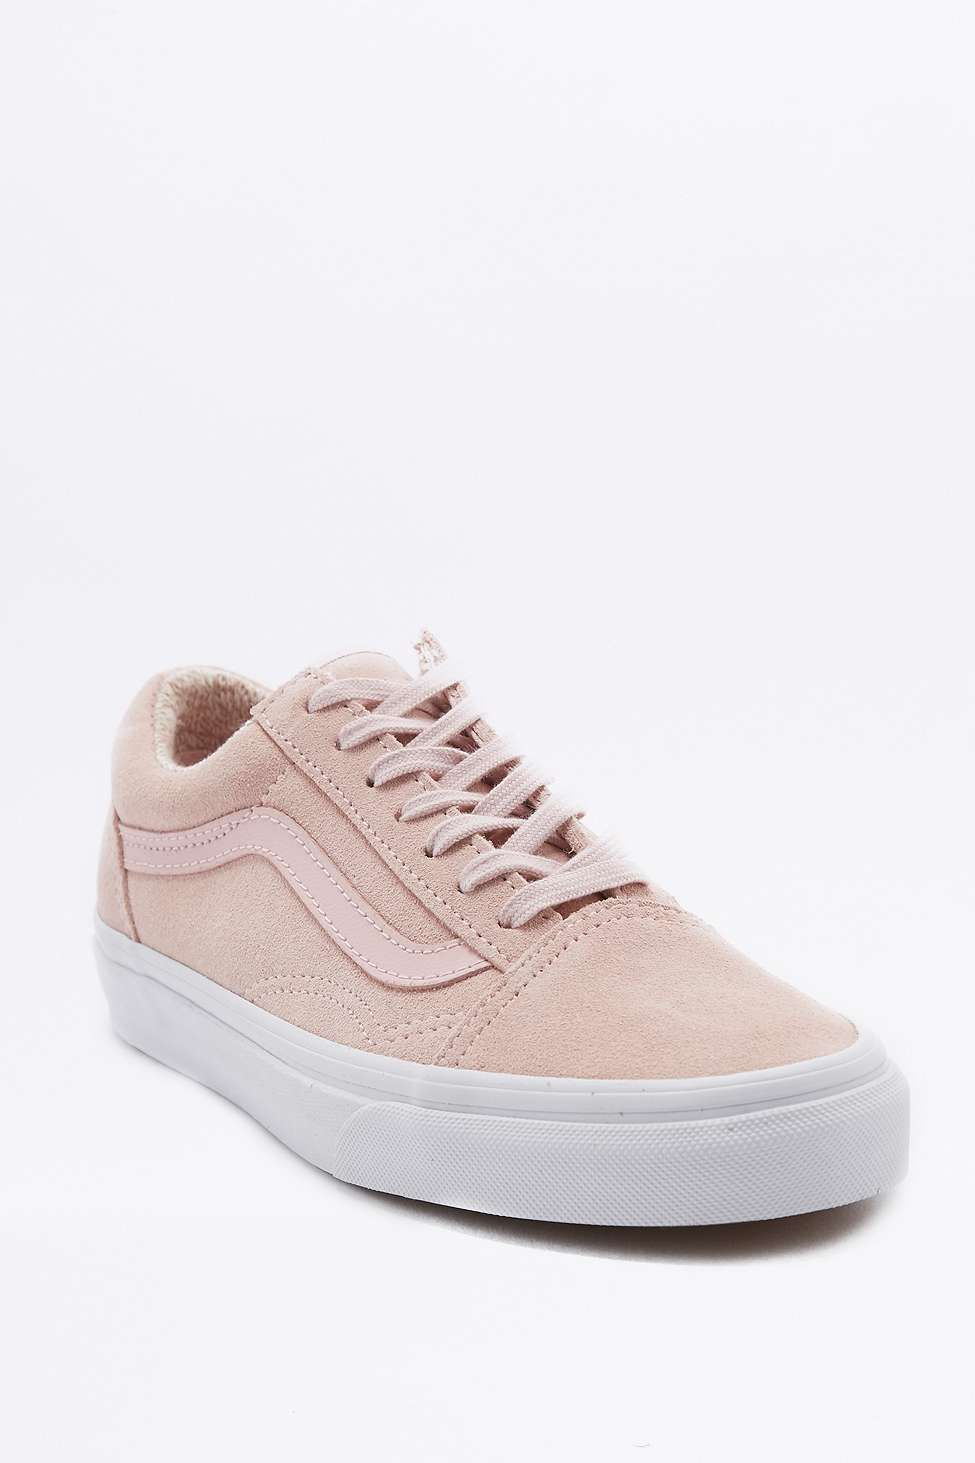 Vans - Baskets Old Skool en daim roses   Make Up - Hair - Nails ... 33dc4b5d5f7